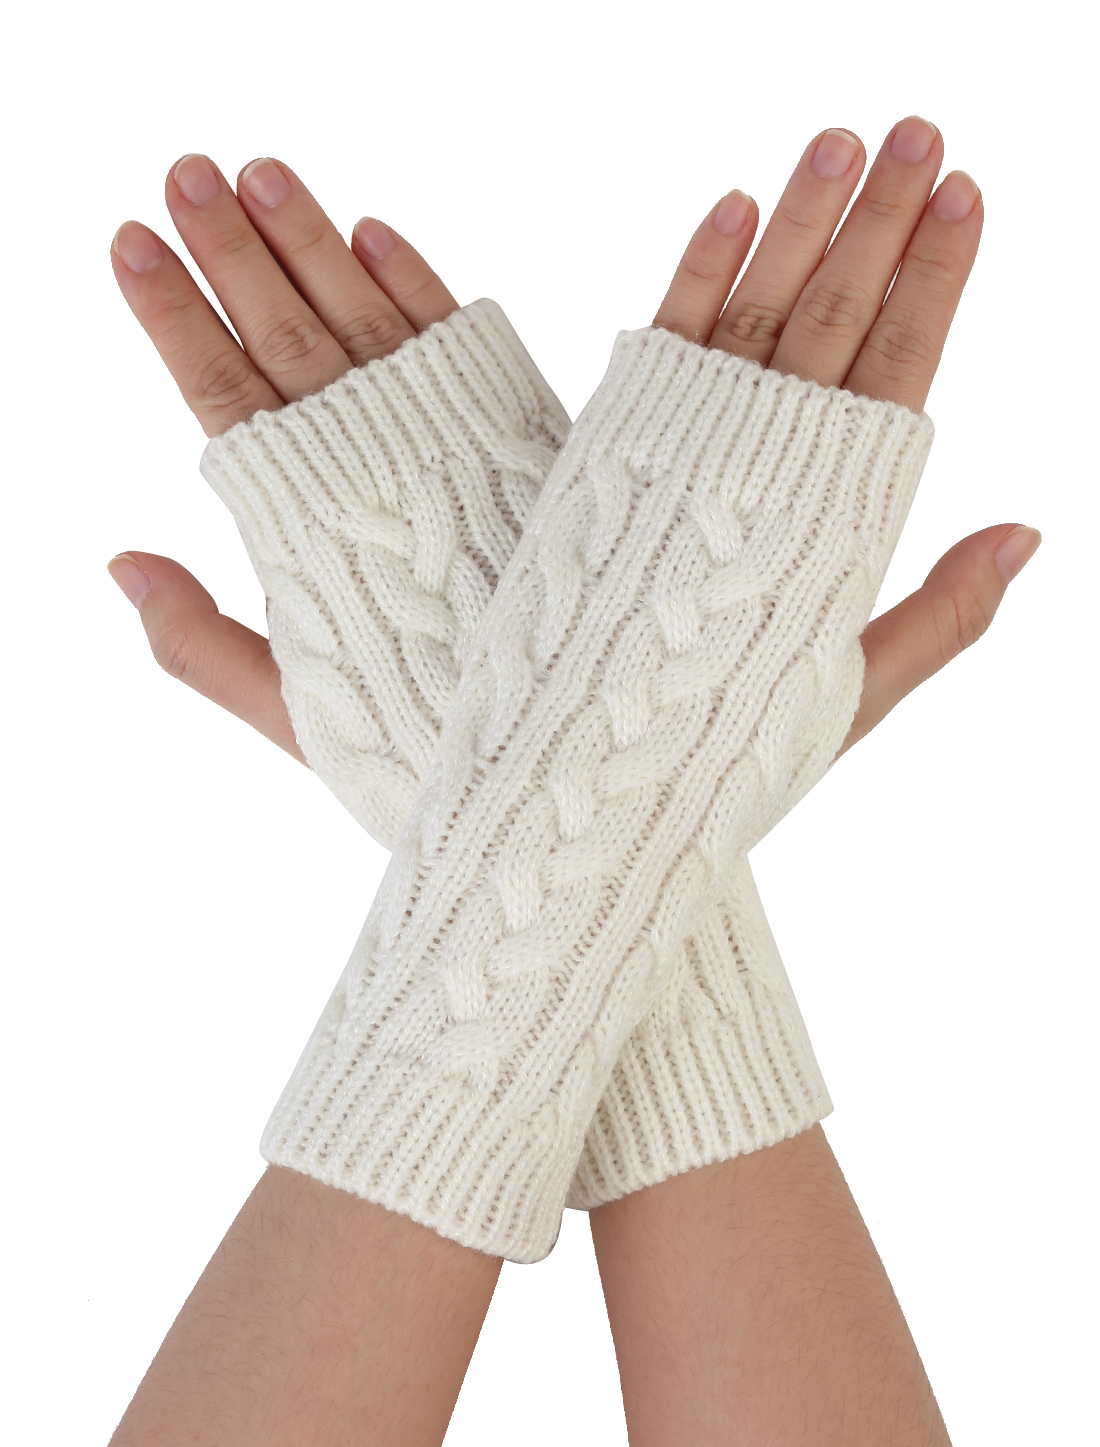 Unisex Thumbhole Fingerless Cable Knit Knitted Gloves White